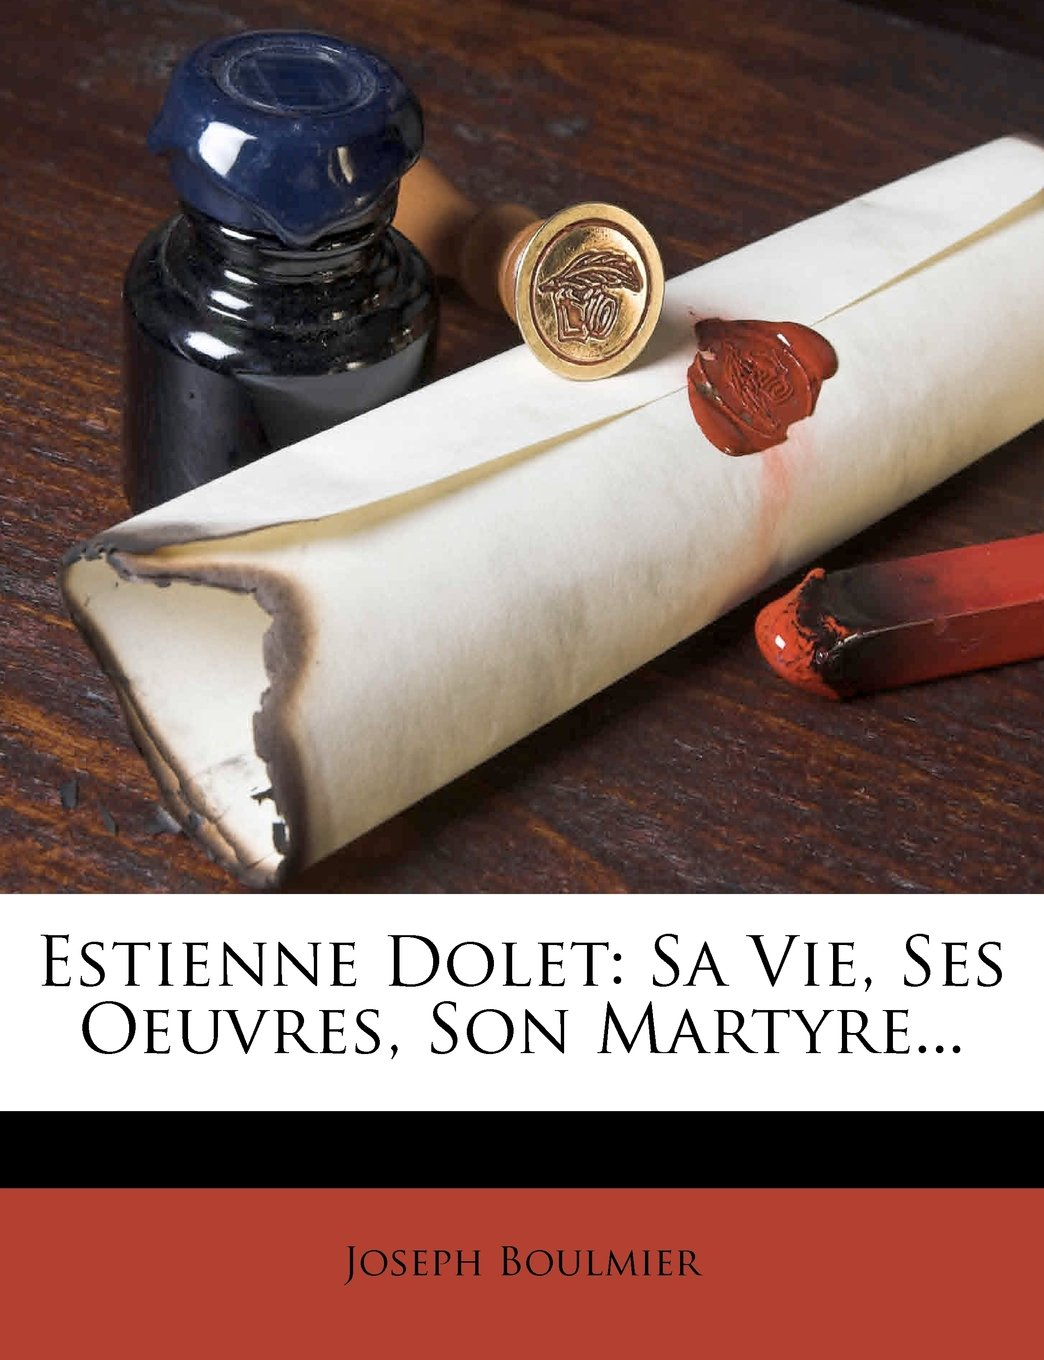 Download Estienne Dolet: Sa Vie, Ses Oeuvres, Son Martyre... (French Edition) PDF